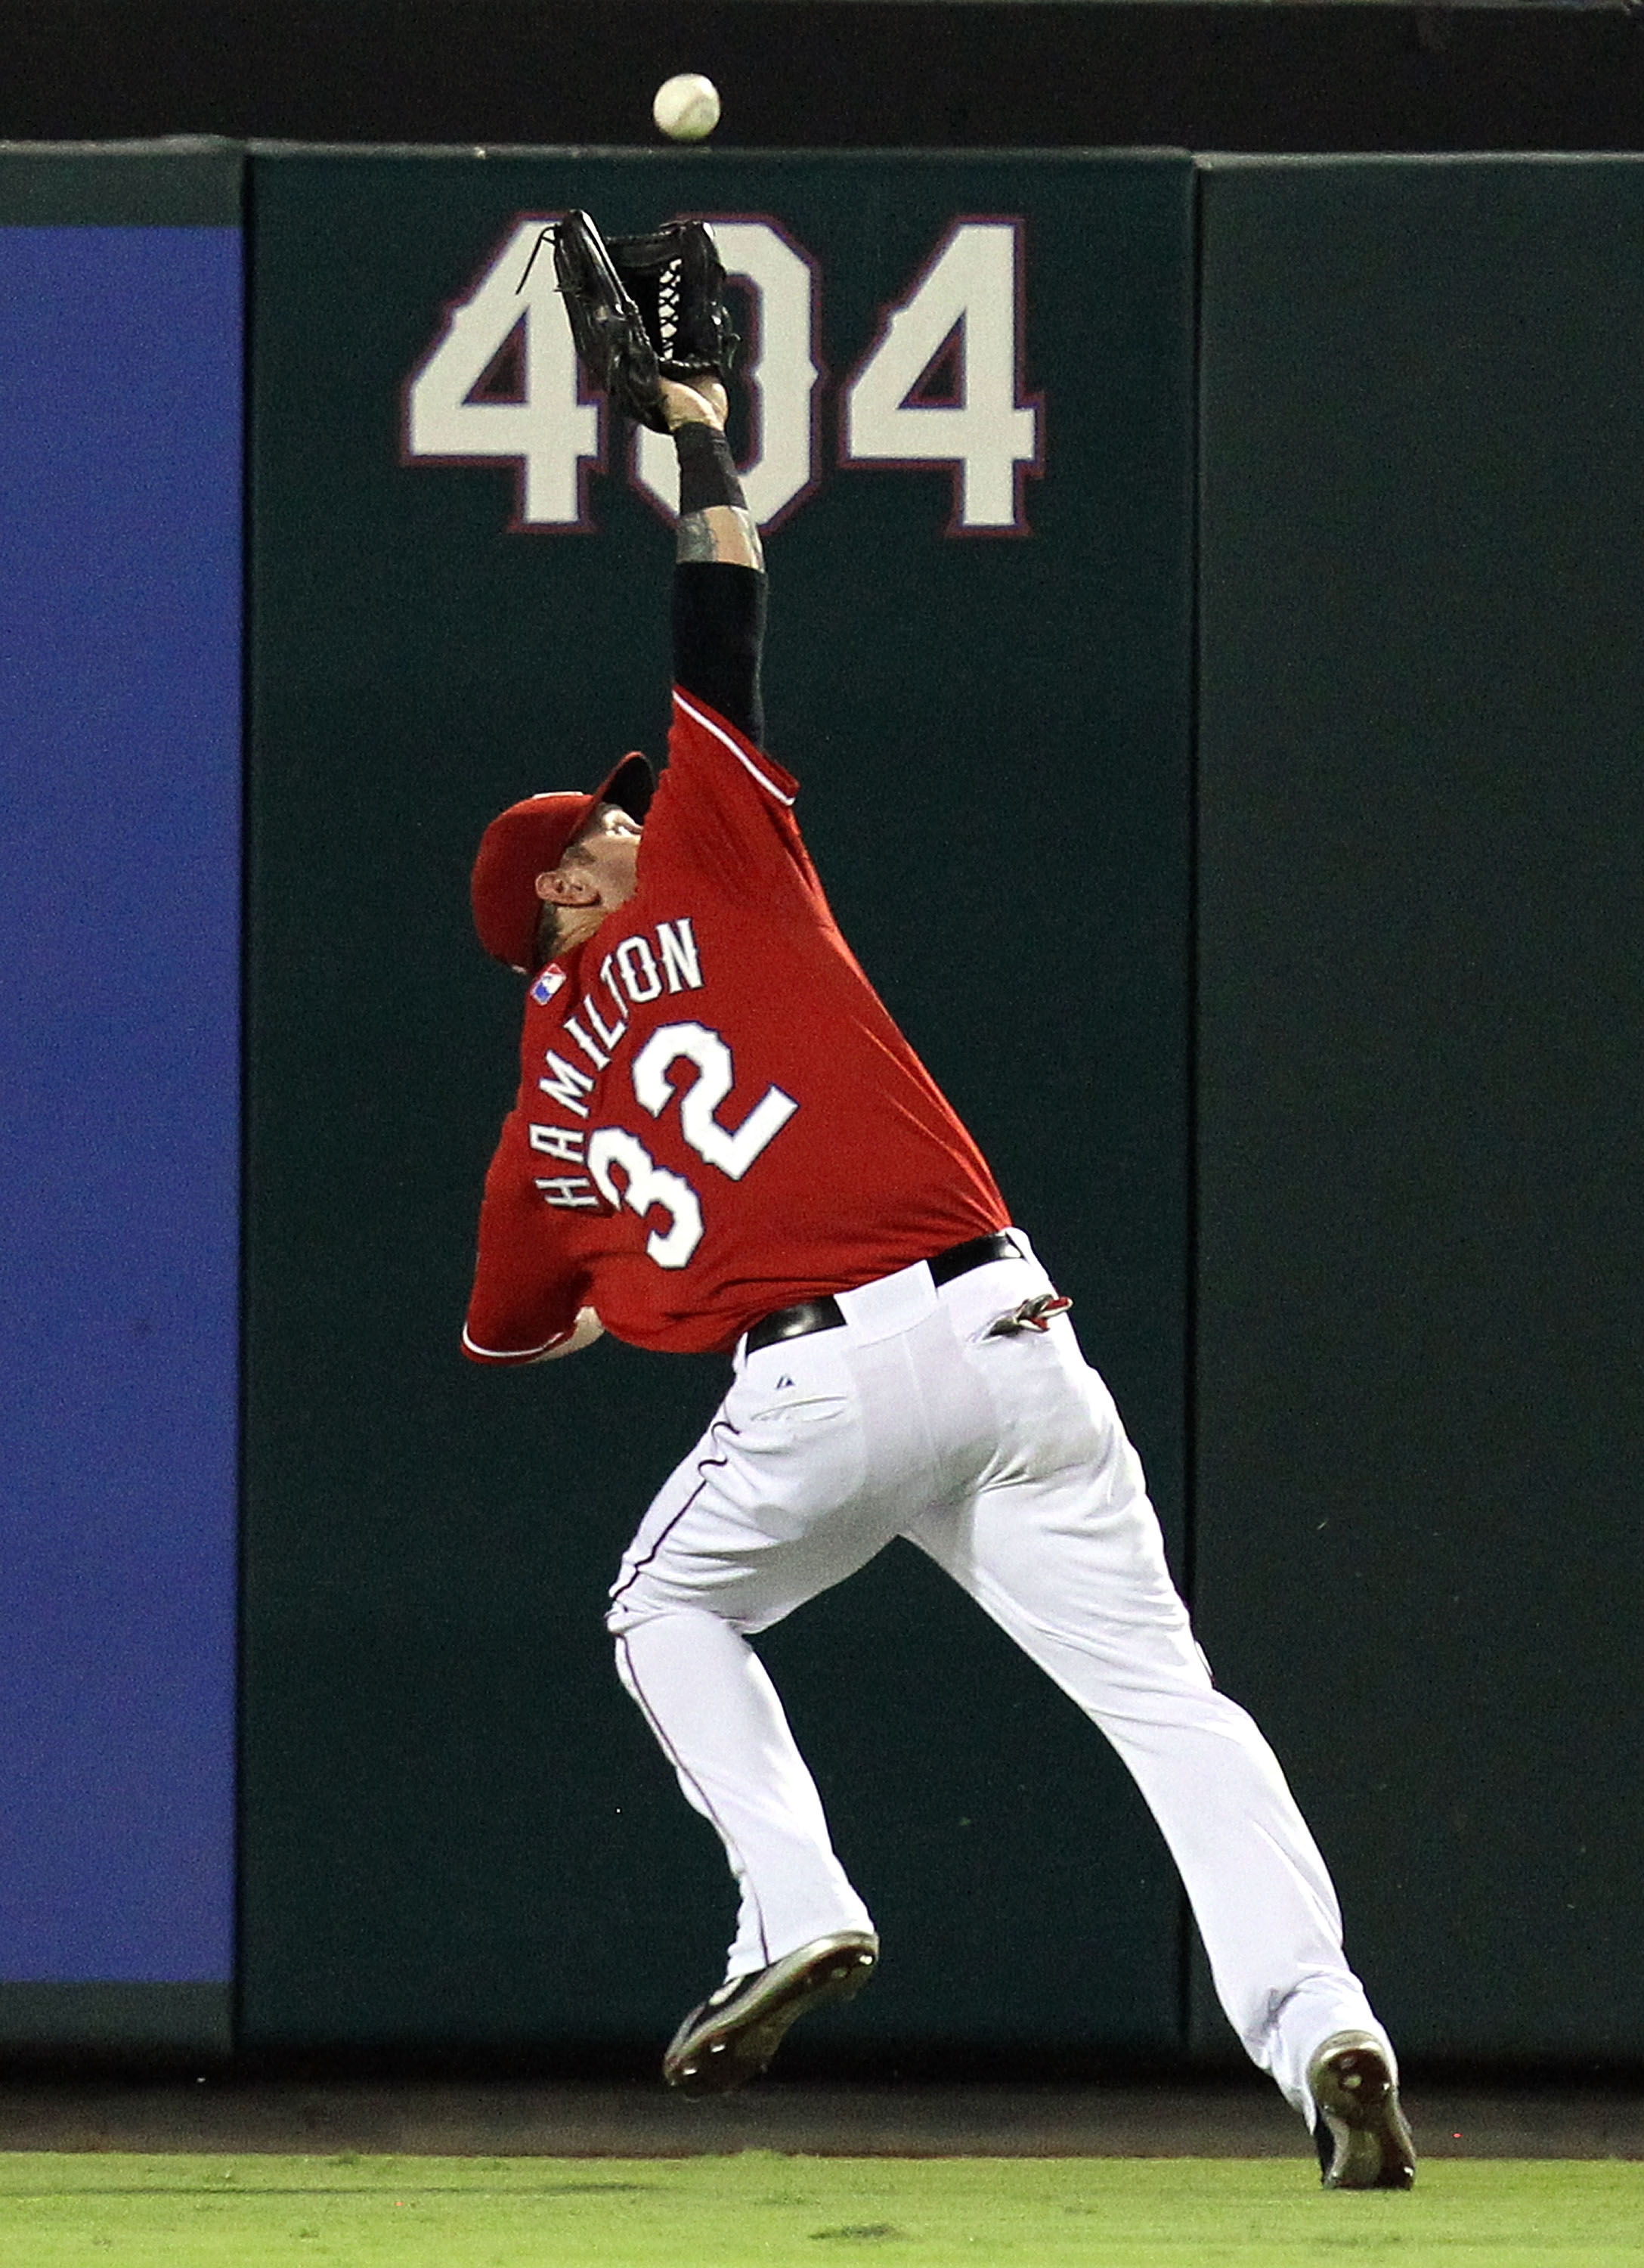 ARLINGTON, TX - OCTOBER 01:  Left fielder Josh Hamilton #32 of the Texas Rangers makes the fly out against Torii Hunter #48 of the Los Angeles Angels of Anaheim at Rangers Ballpark in Arlington on October 1, 2010 in Arlington, Texas.  (Photo by Ronald Mar